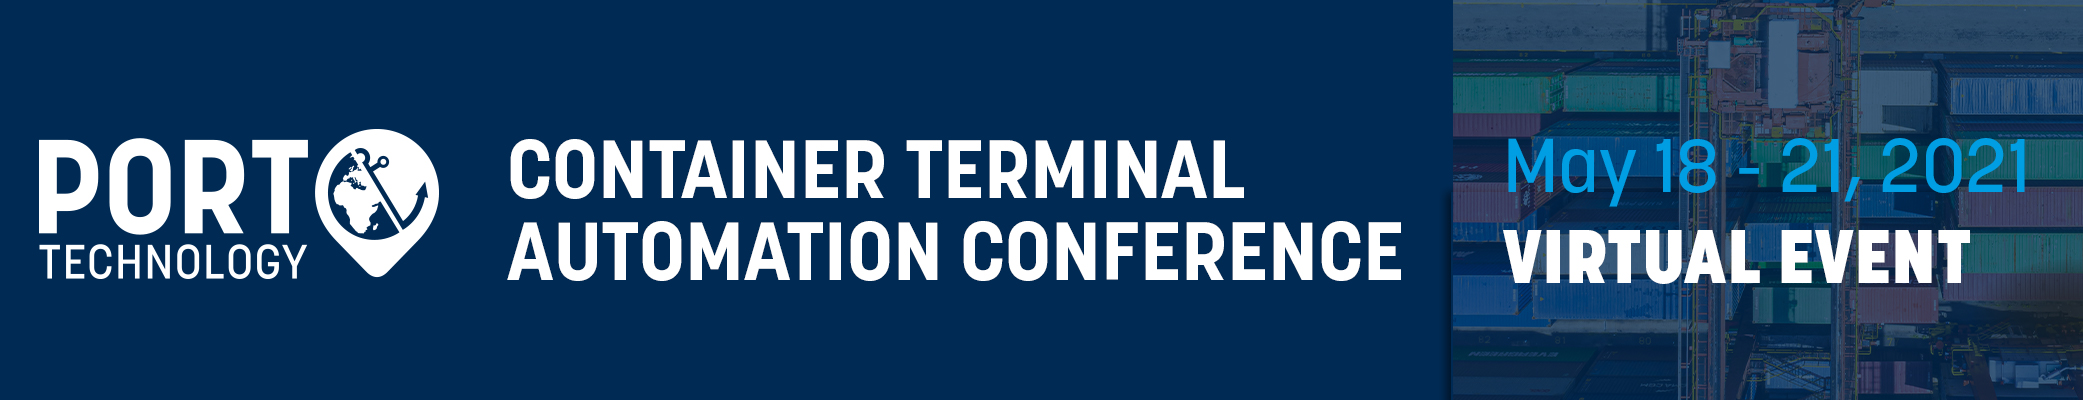 Container Terminal Automation Conference 2021